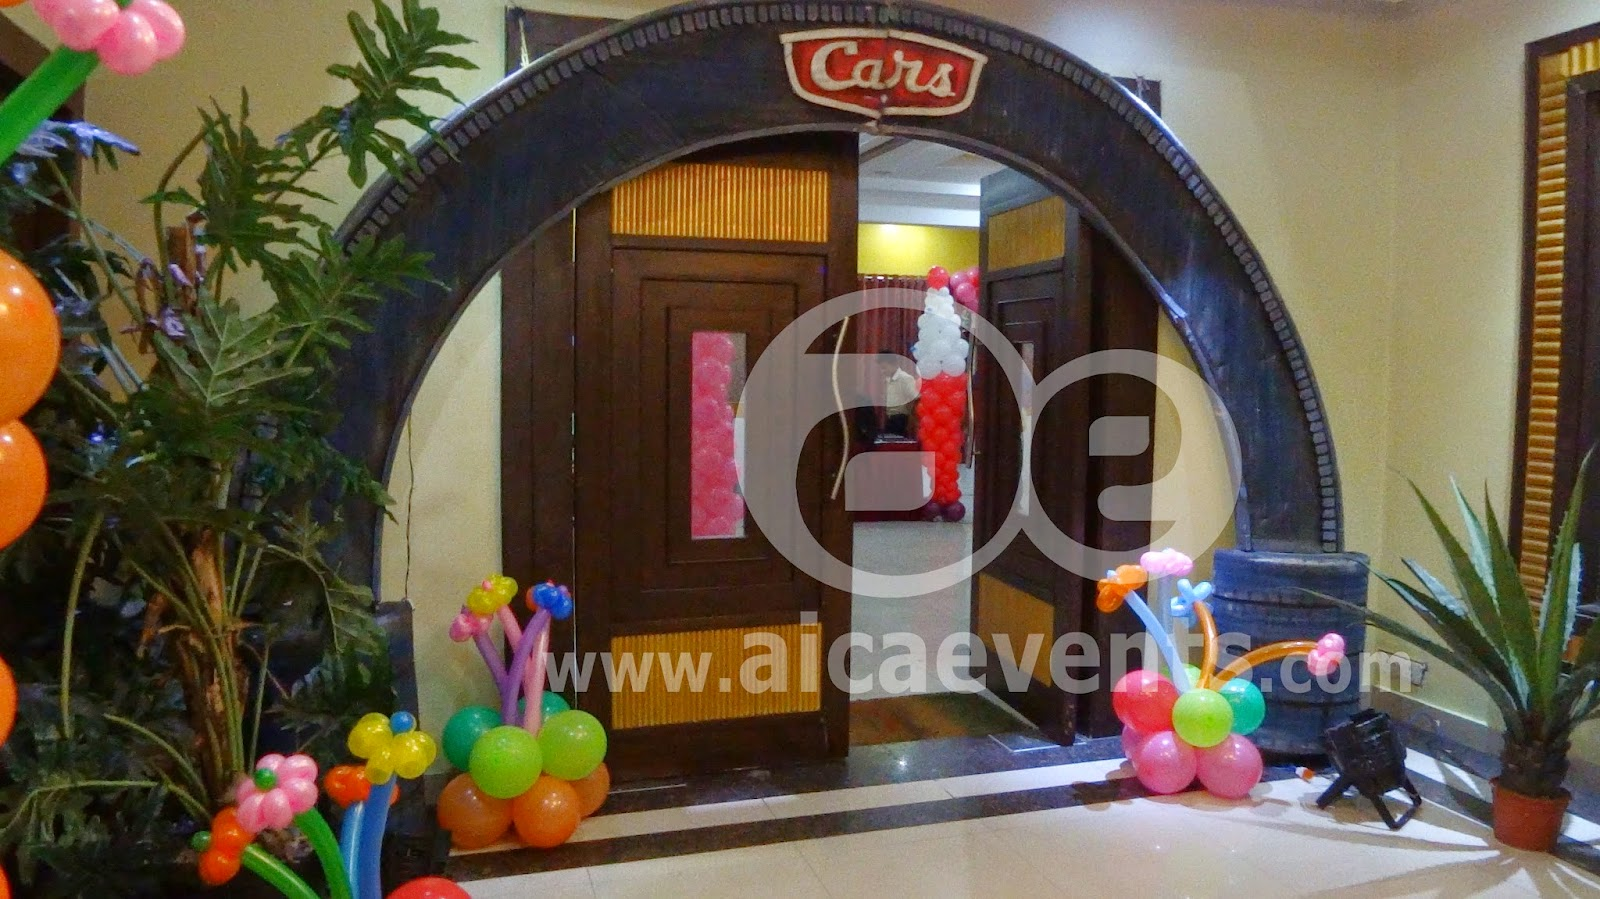 Disney Theme Decorations Aicaevents Disney Cars Theme Birthday Party